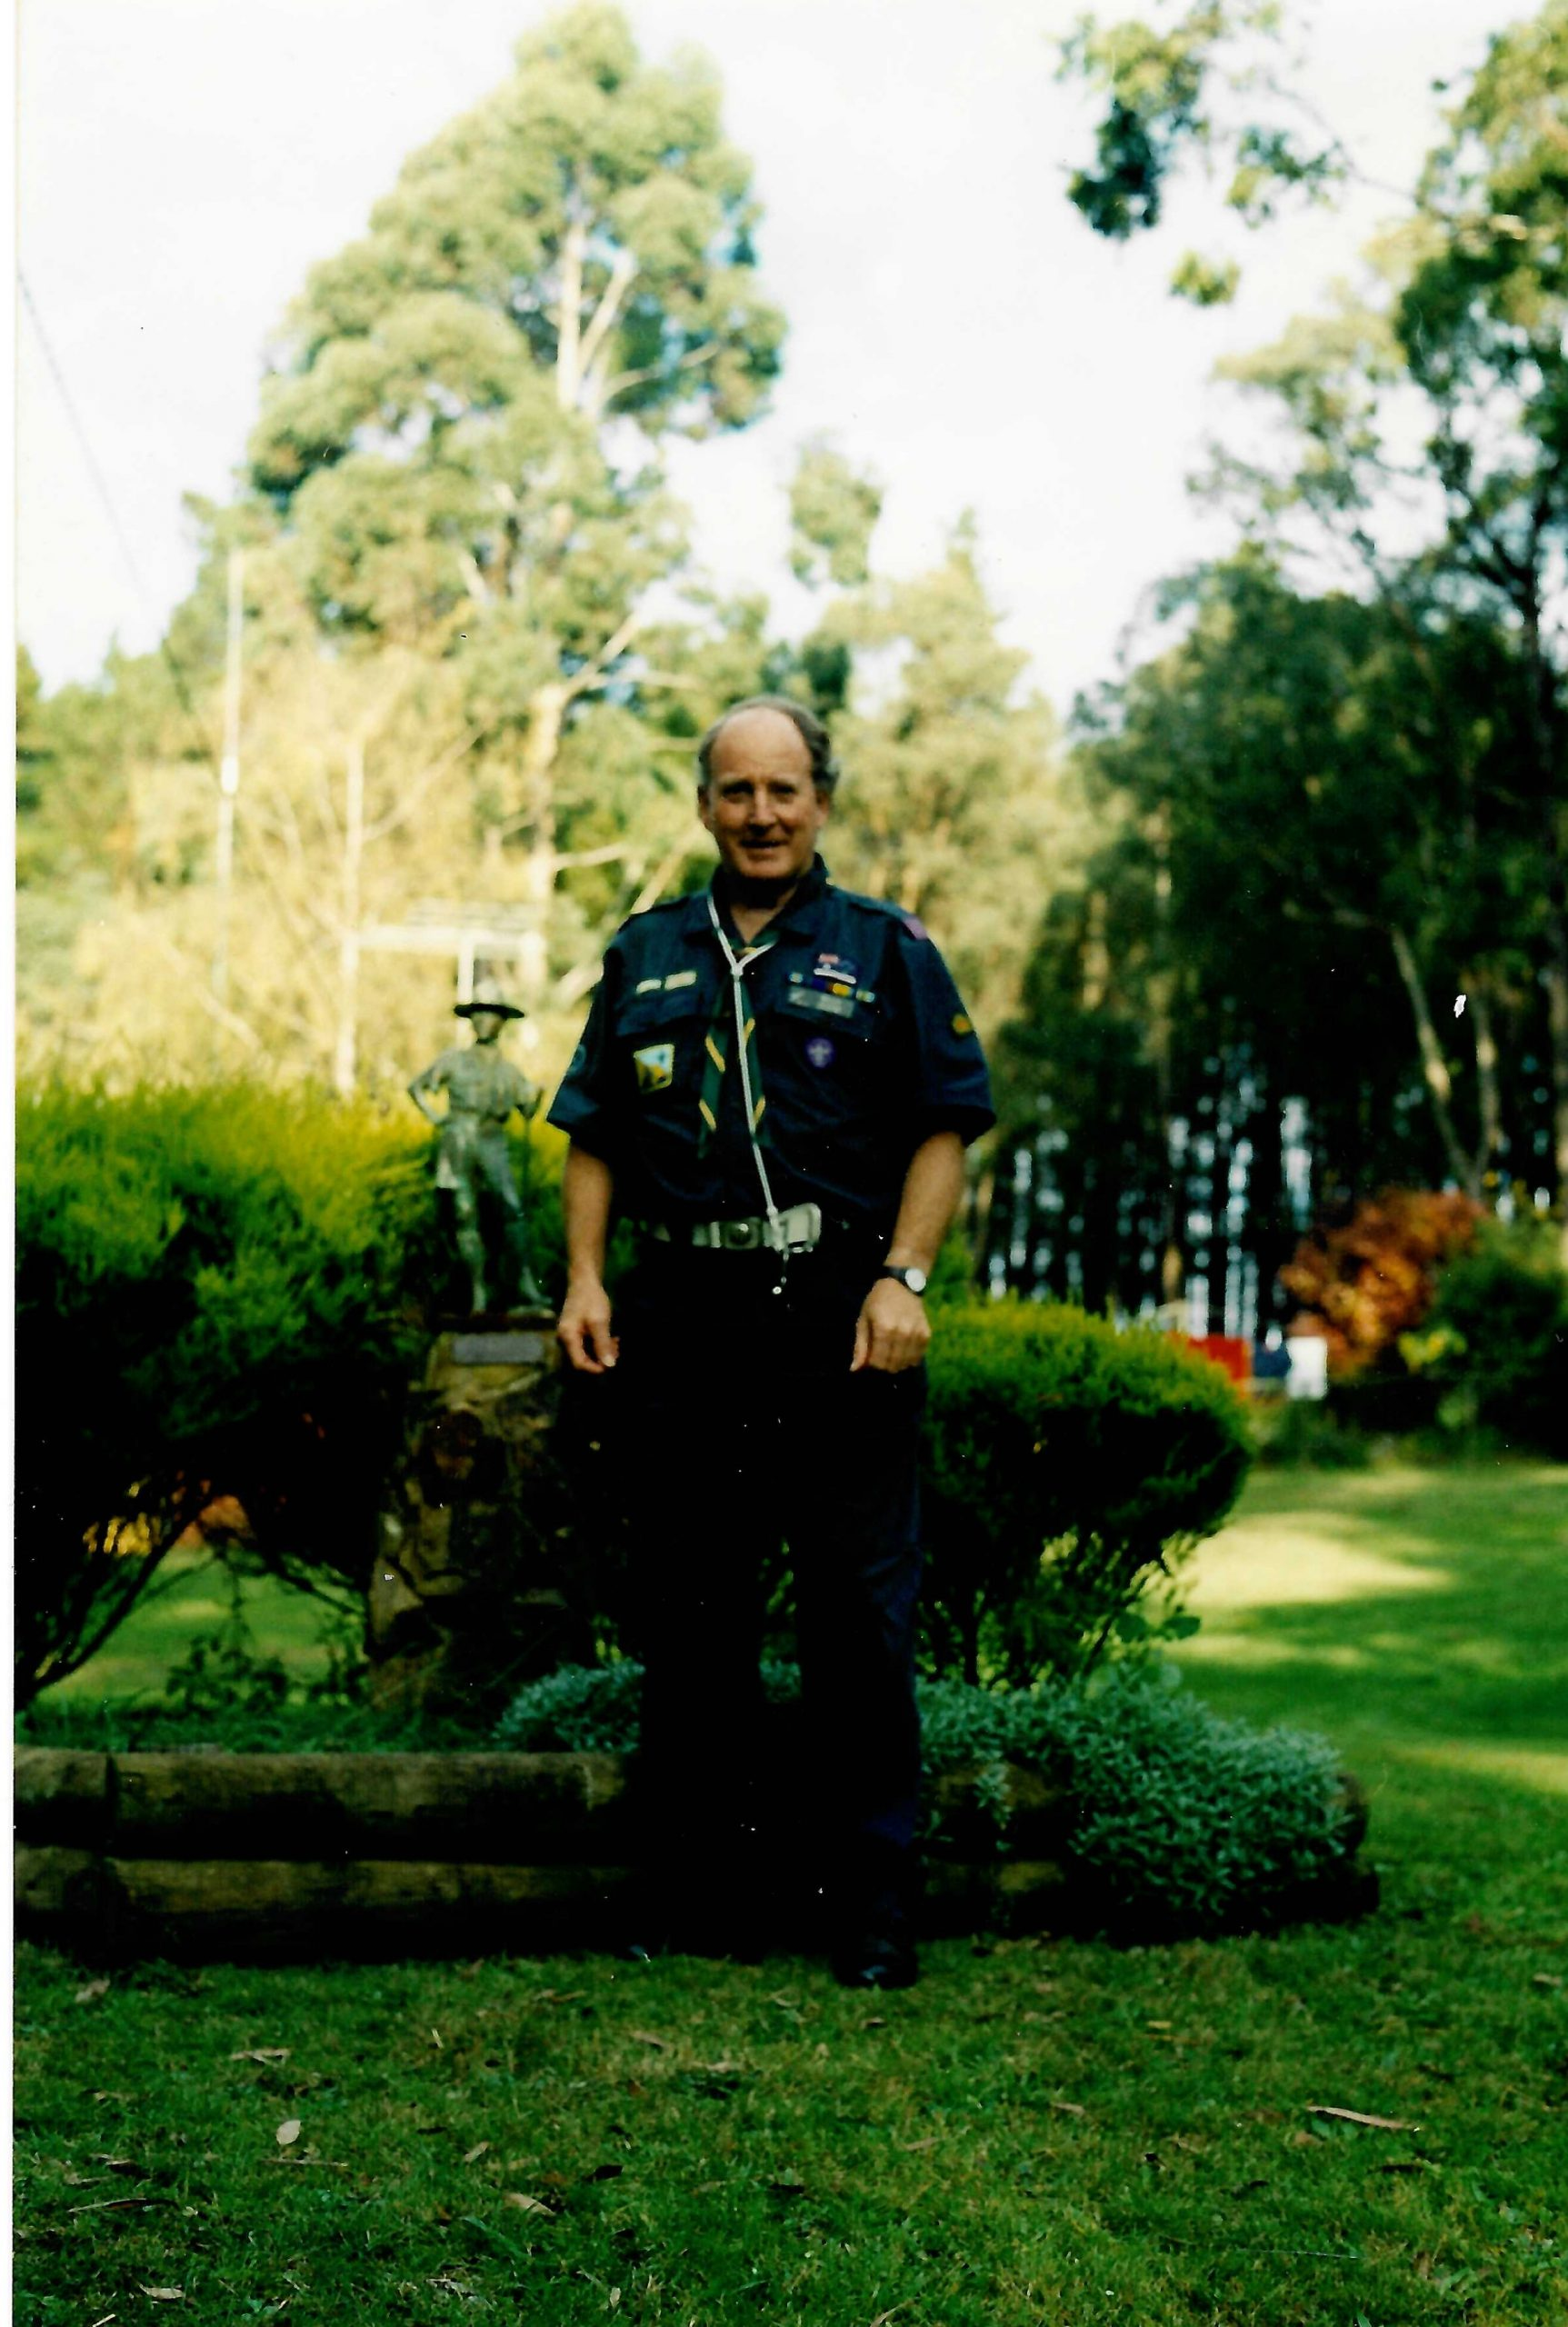 At Gilwell Park, Gembrook, a site he actively supported into old age, having been offered the Camp Chief of Gilwell Park role, a job he sadly had to decline due to failing health